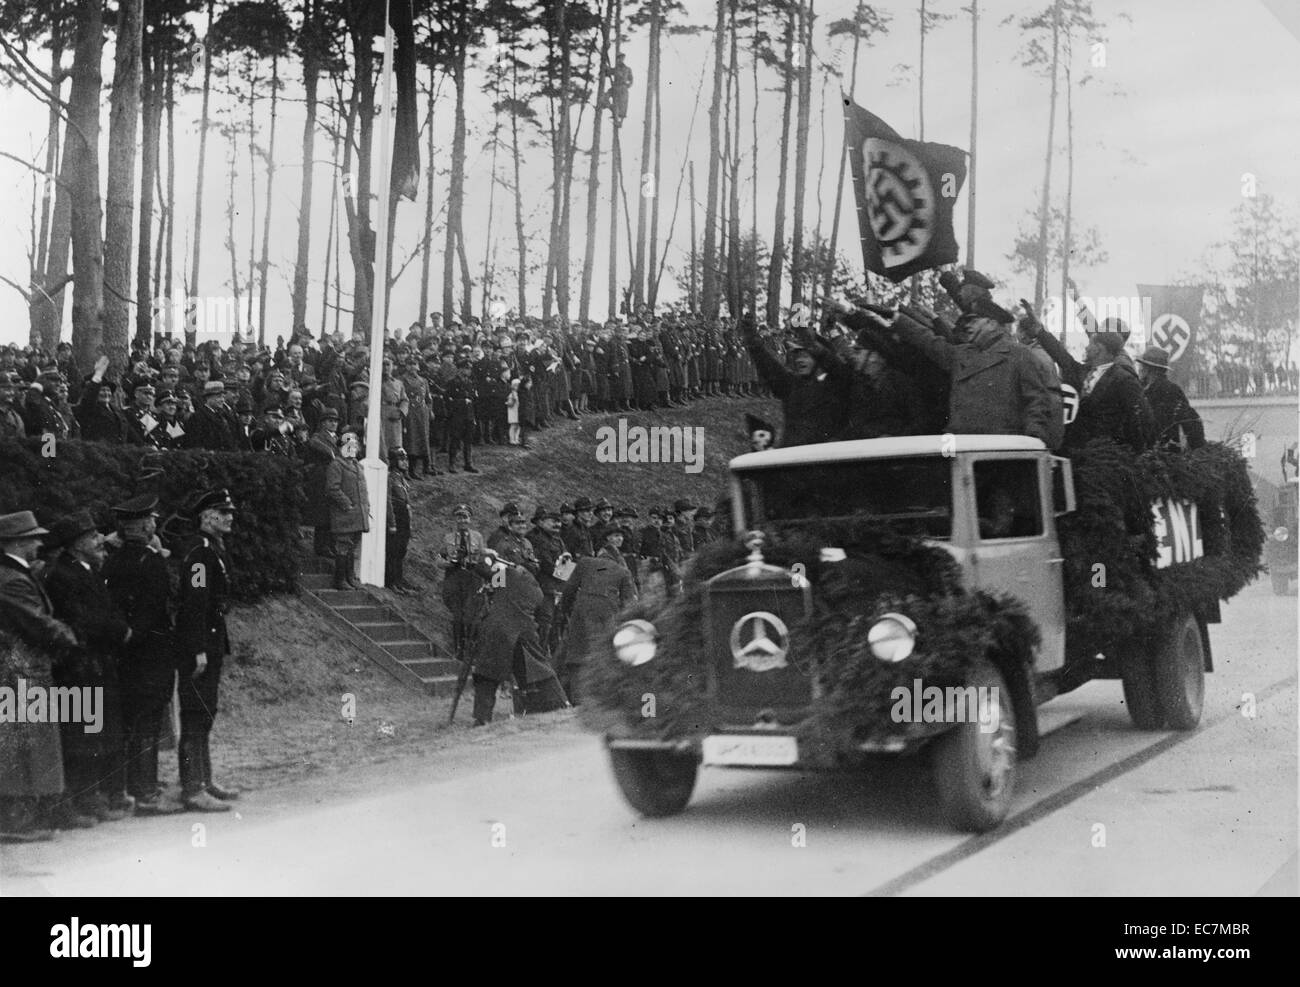 Men standing in the back of a truck salute Hermann Goring and other officials during the inaugural ceremonies for - Stock Image